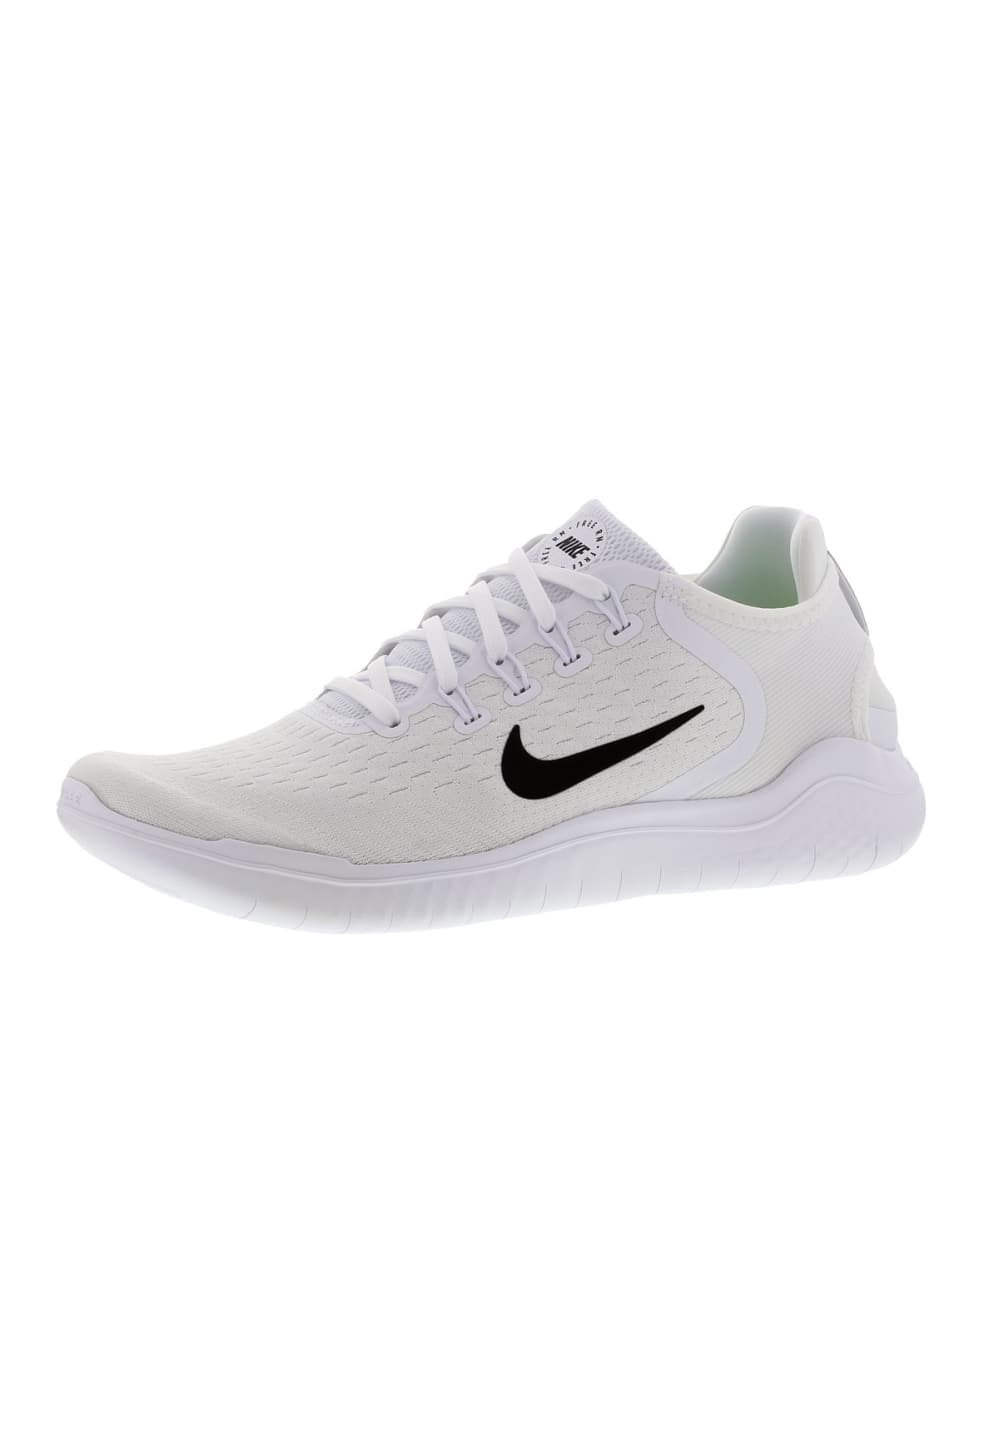 110cf179491 Next. -60%. This product is currently out of stock. Nike. Free RN 2018 - Running  shoes for Men